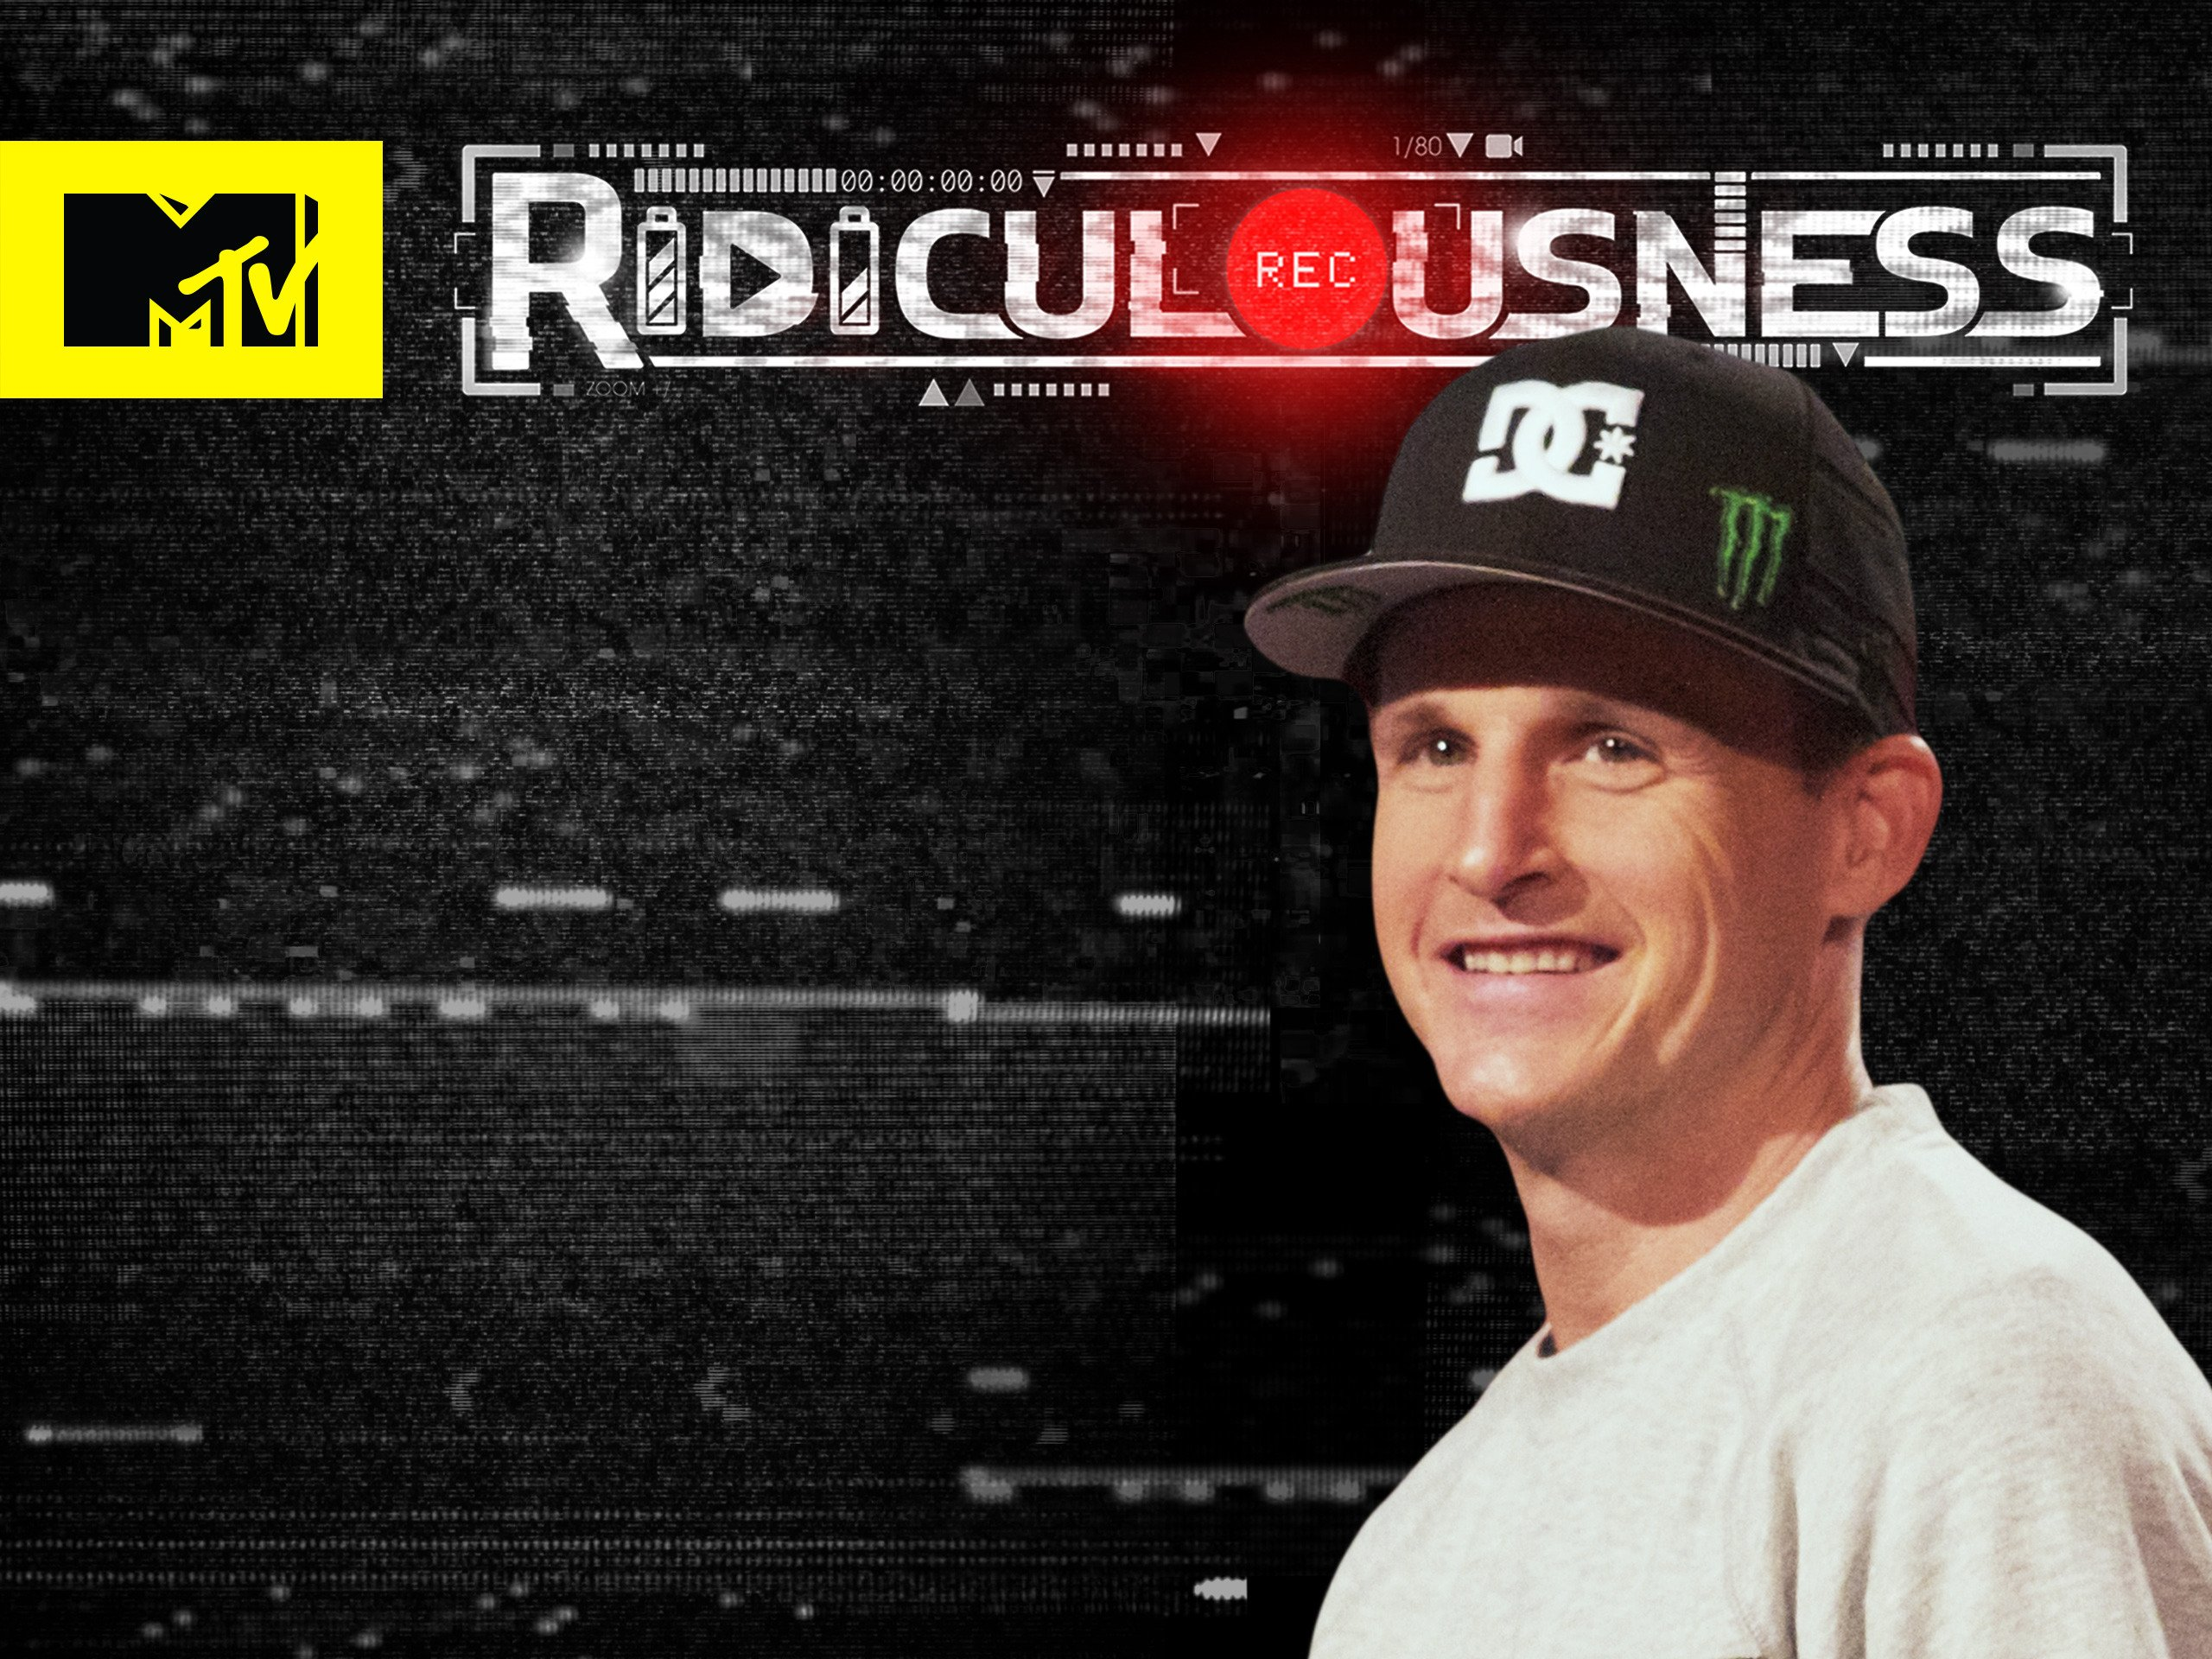 15bc90c527846 Amazon.com: Watch Ridiculousness - Volume 12 | Prime Video